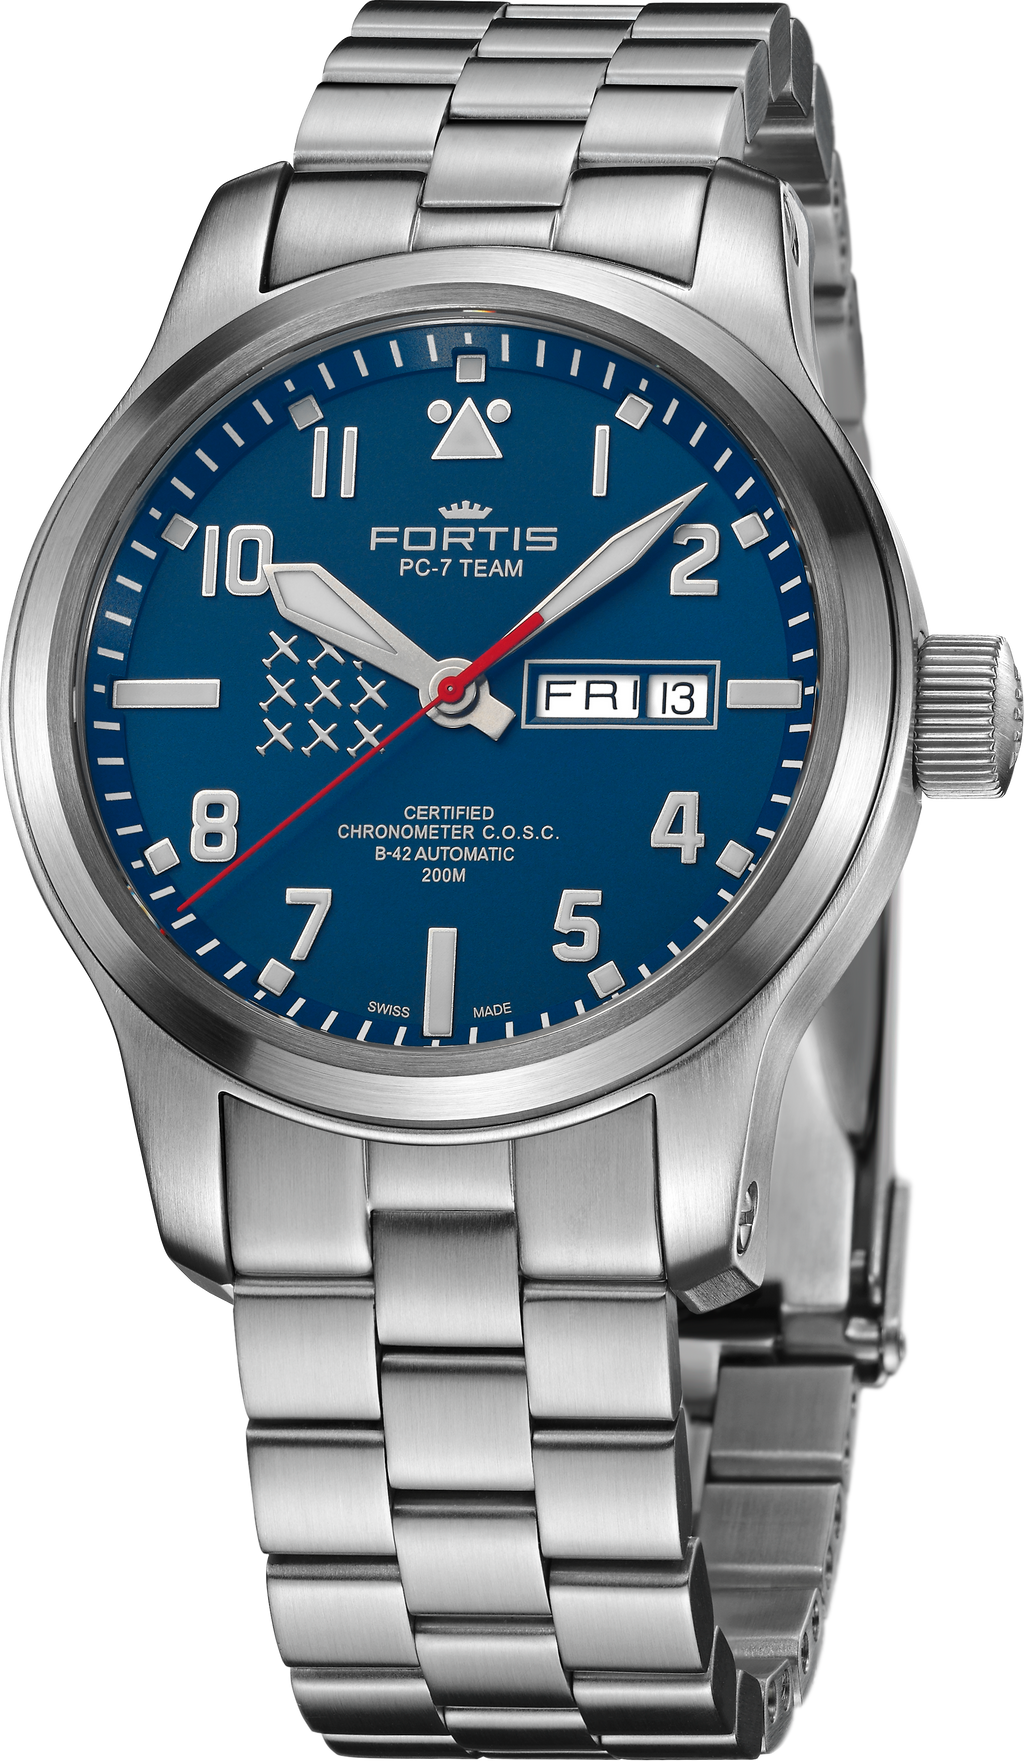 Fortis Aeromaster PC7 Day-Date